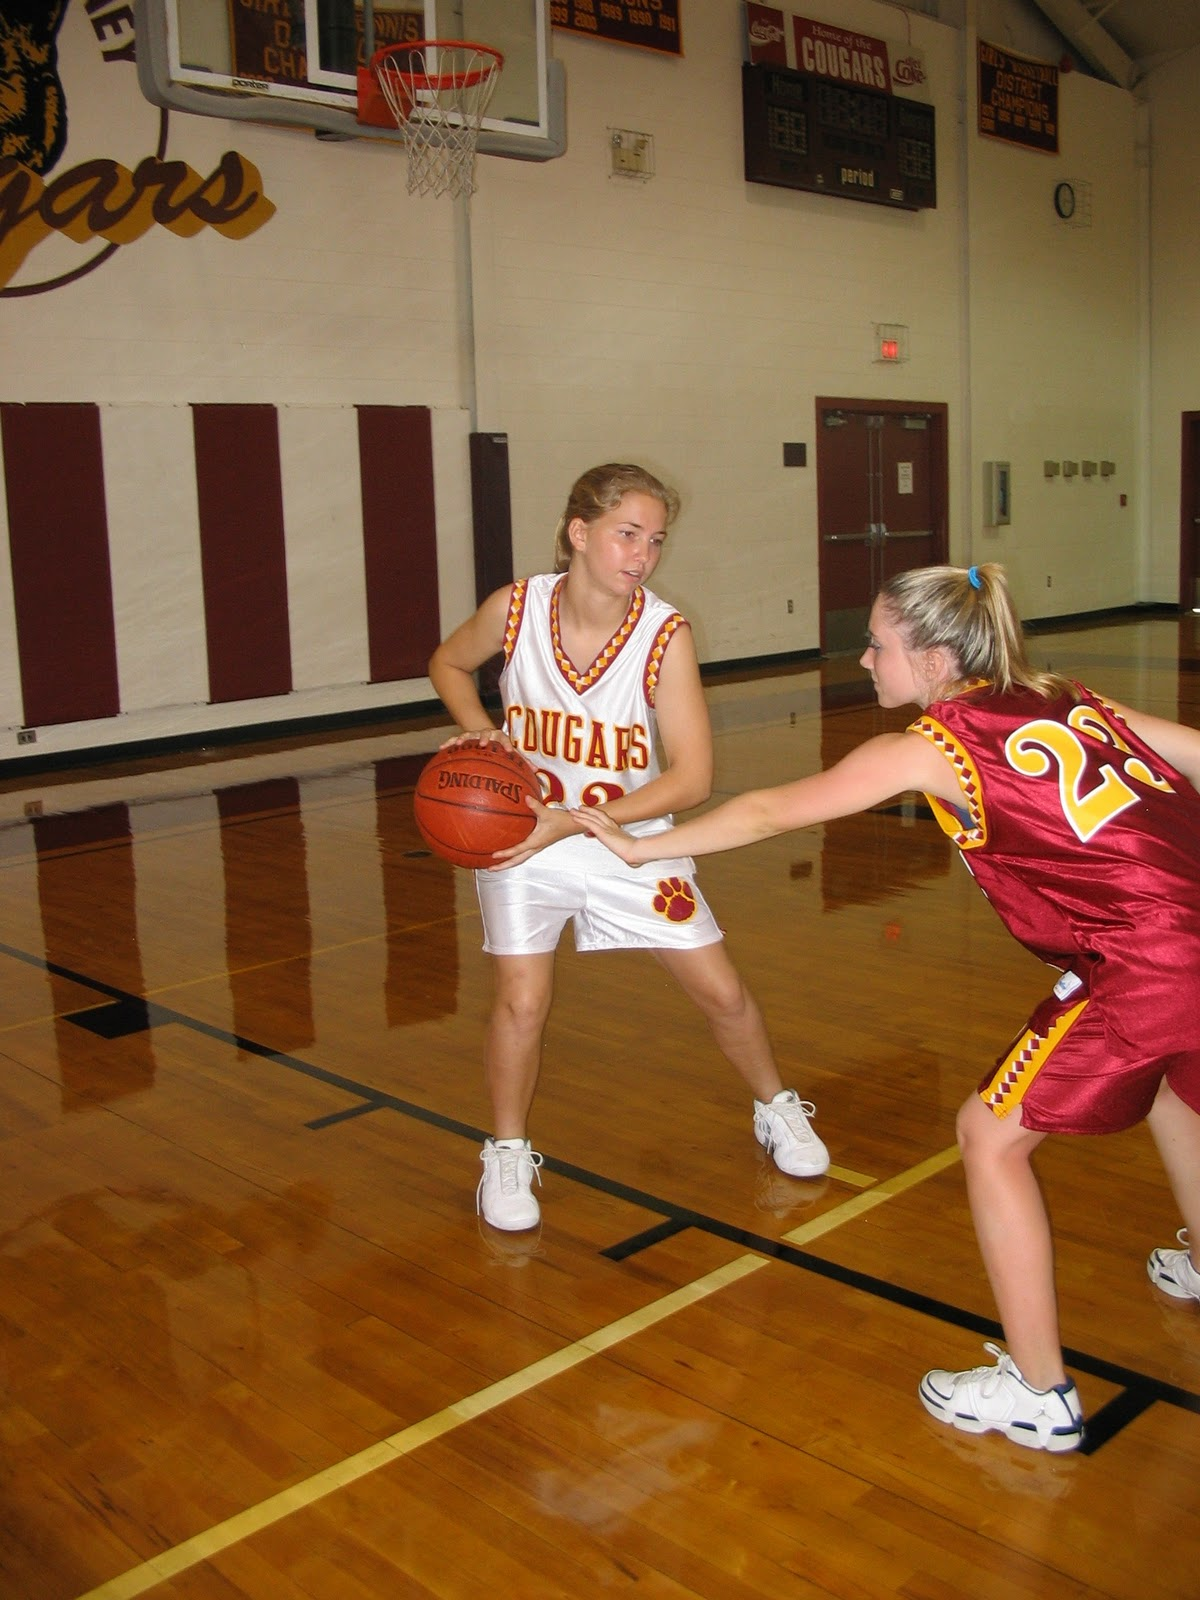 Womens College Basketball League - History